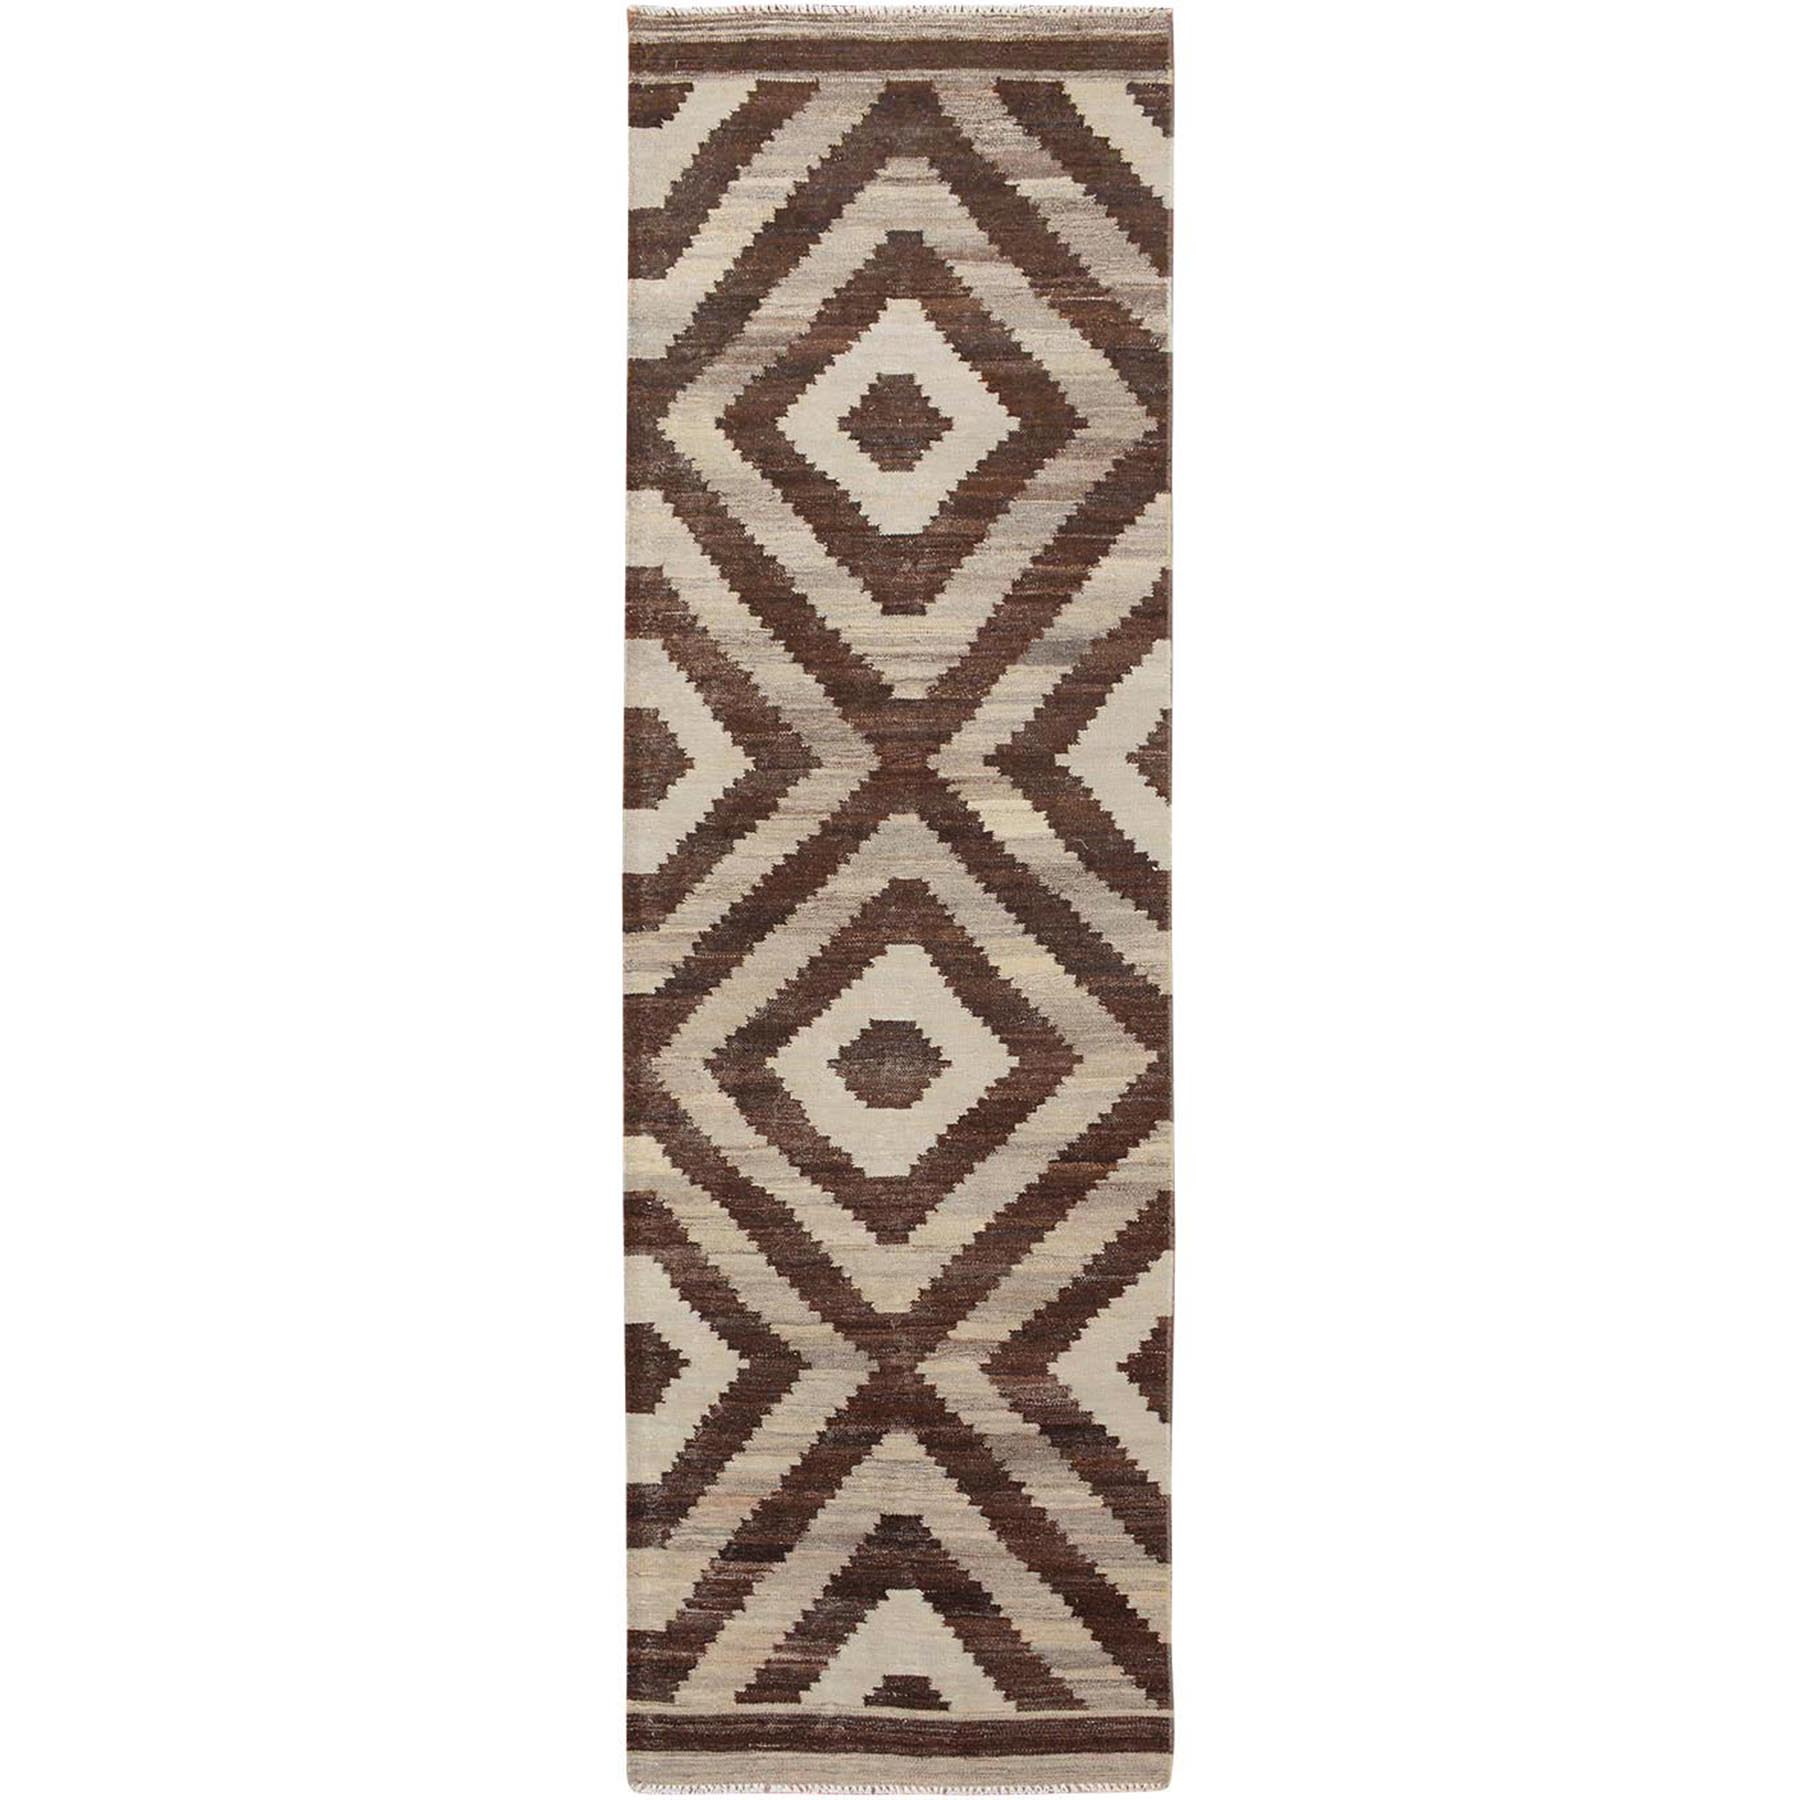 Fine Kilim Collection Hand Woven Brown Rug No: 01115166